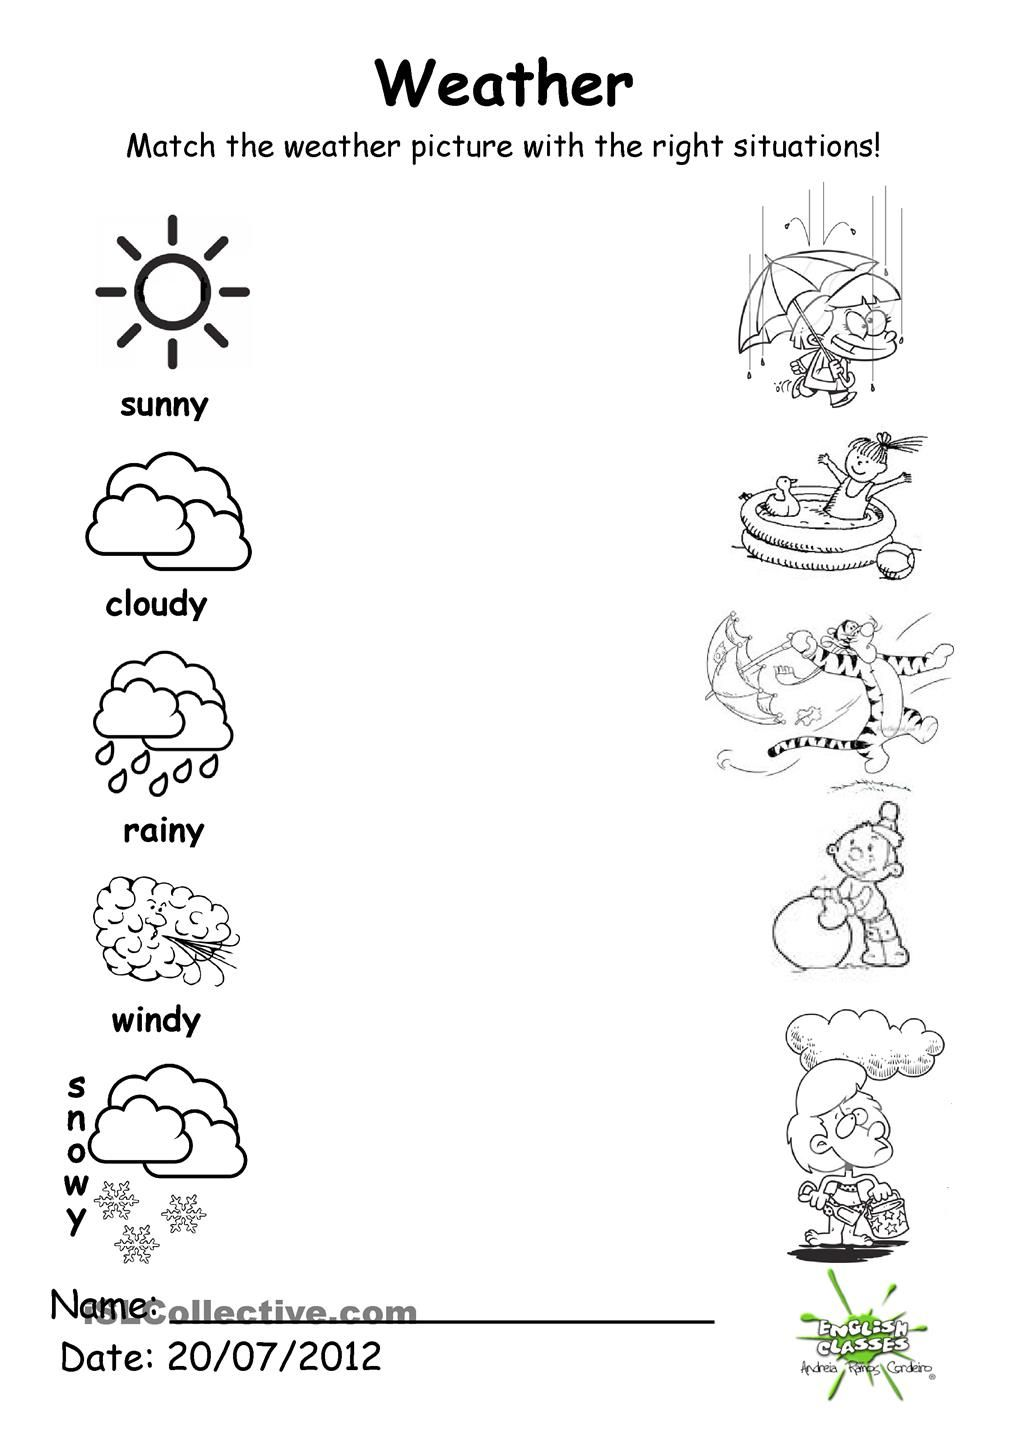 weather match weather theme weather worksheets weather for kids preschool weather. Black Bedroom Furniture Sets. Home Design Ideas